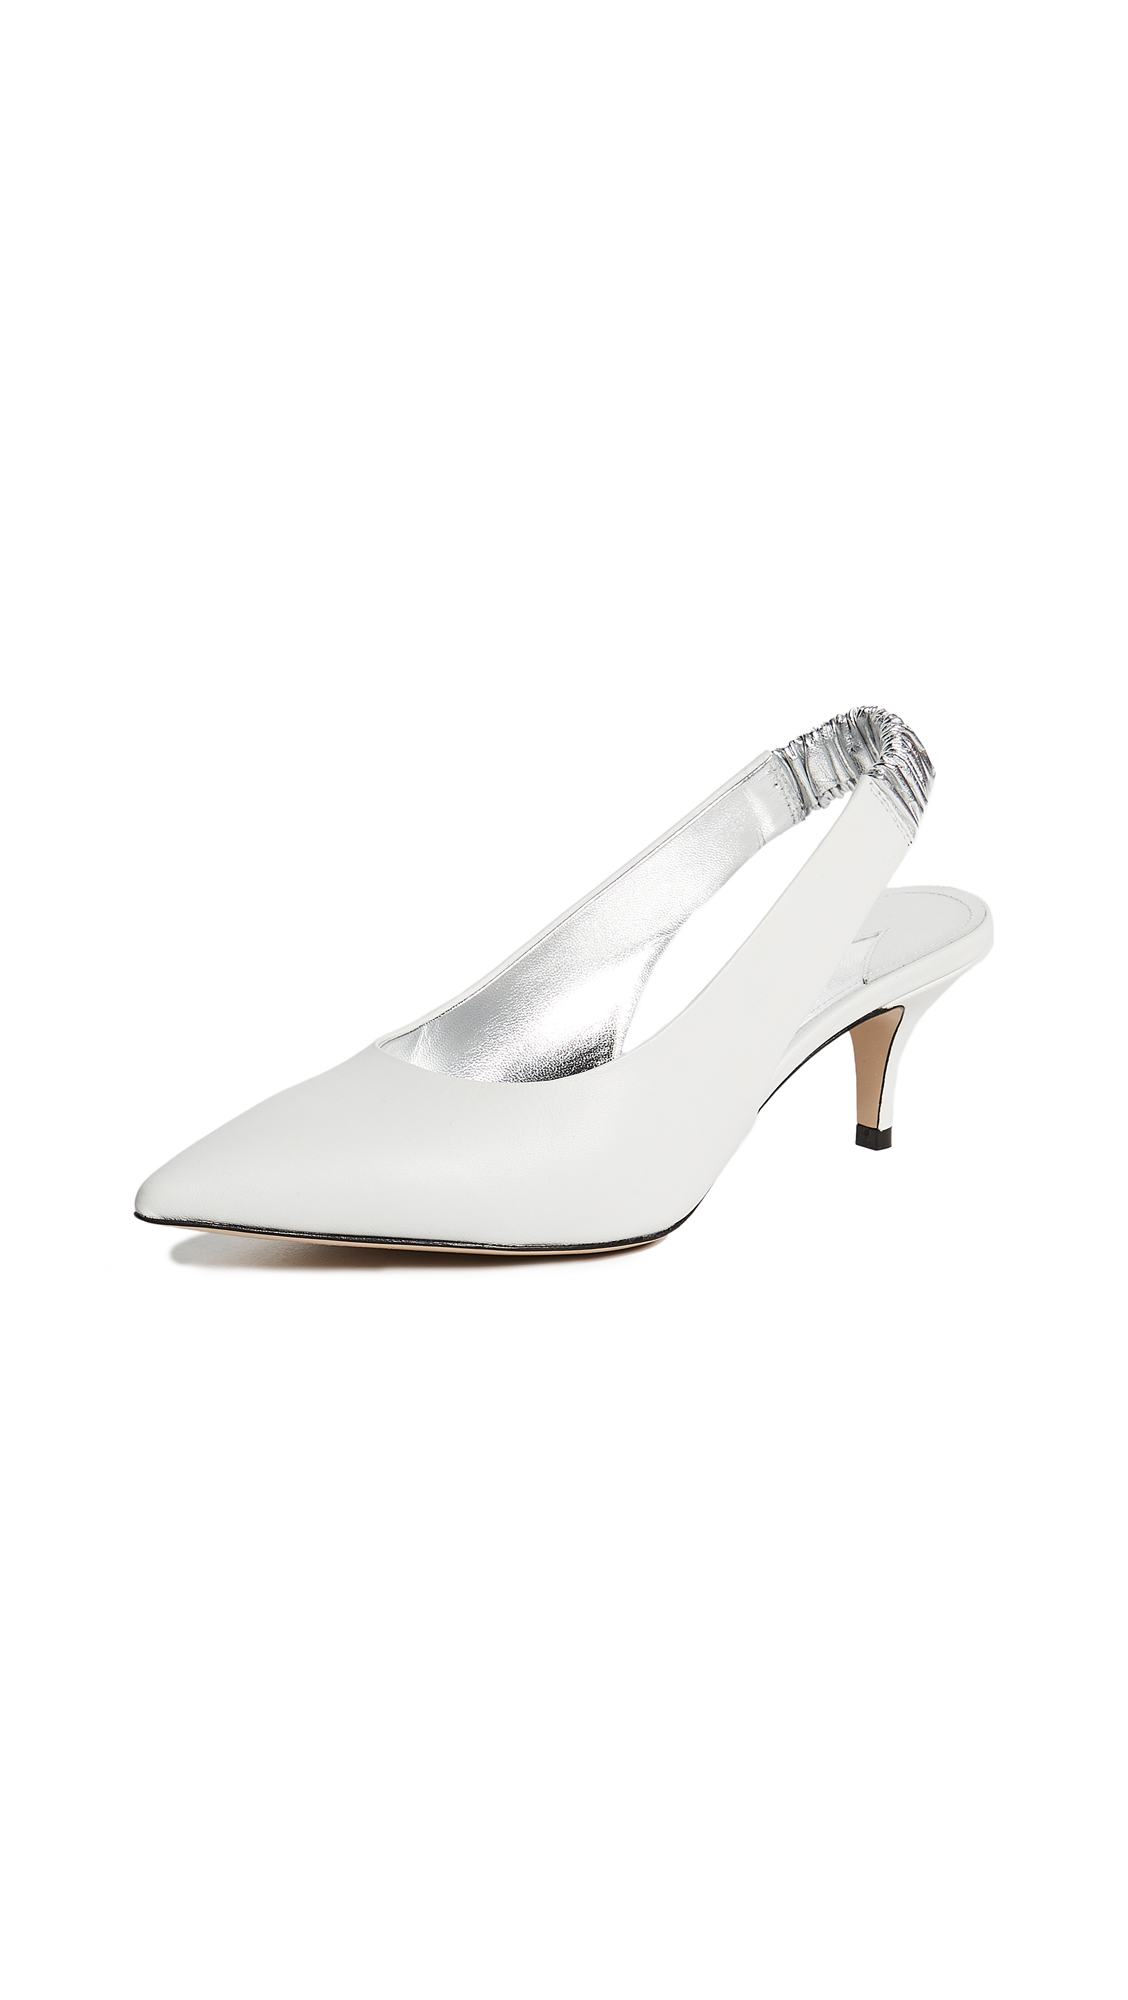 Paul Andrew Carpanthian 55 Slingback Pumps - White/Silver